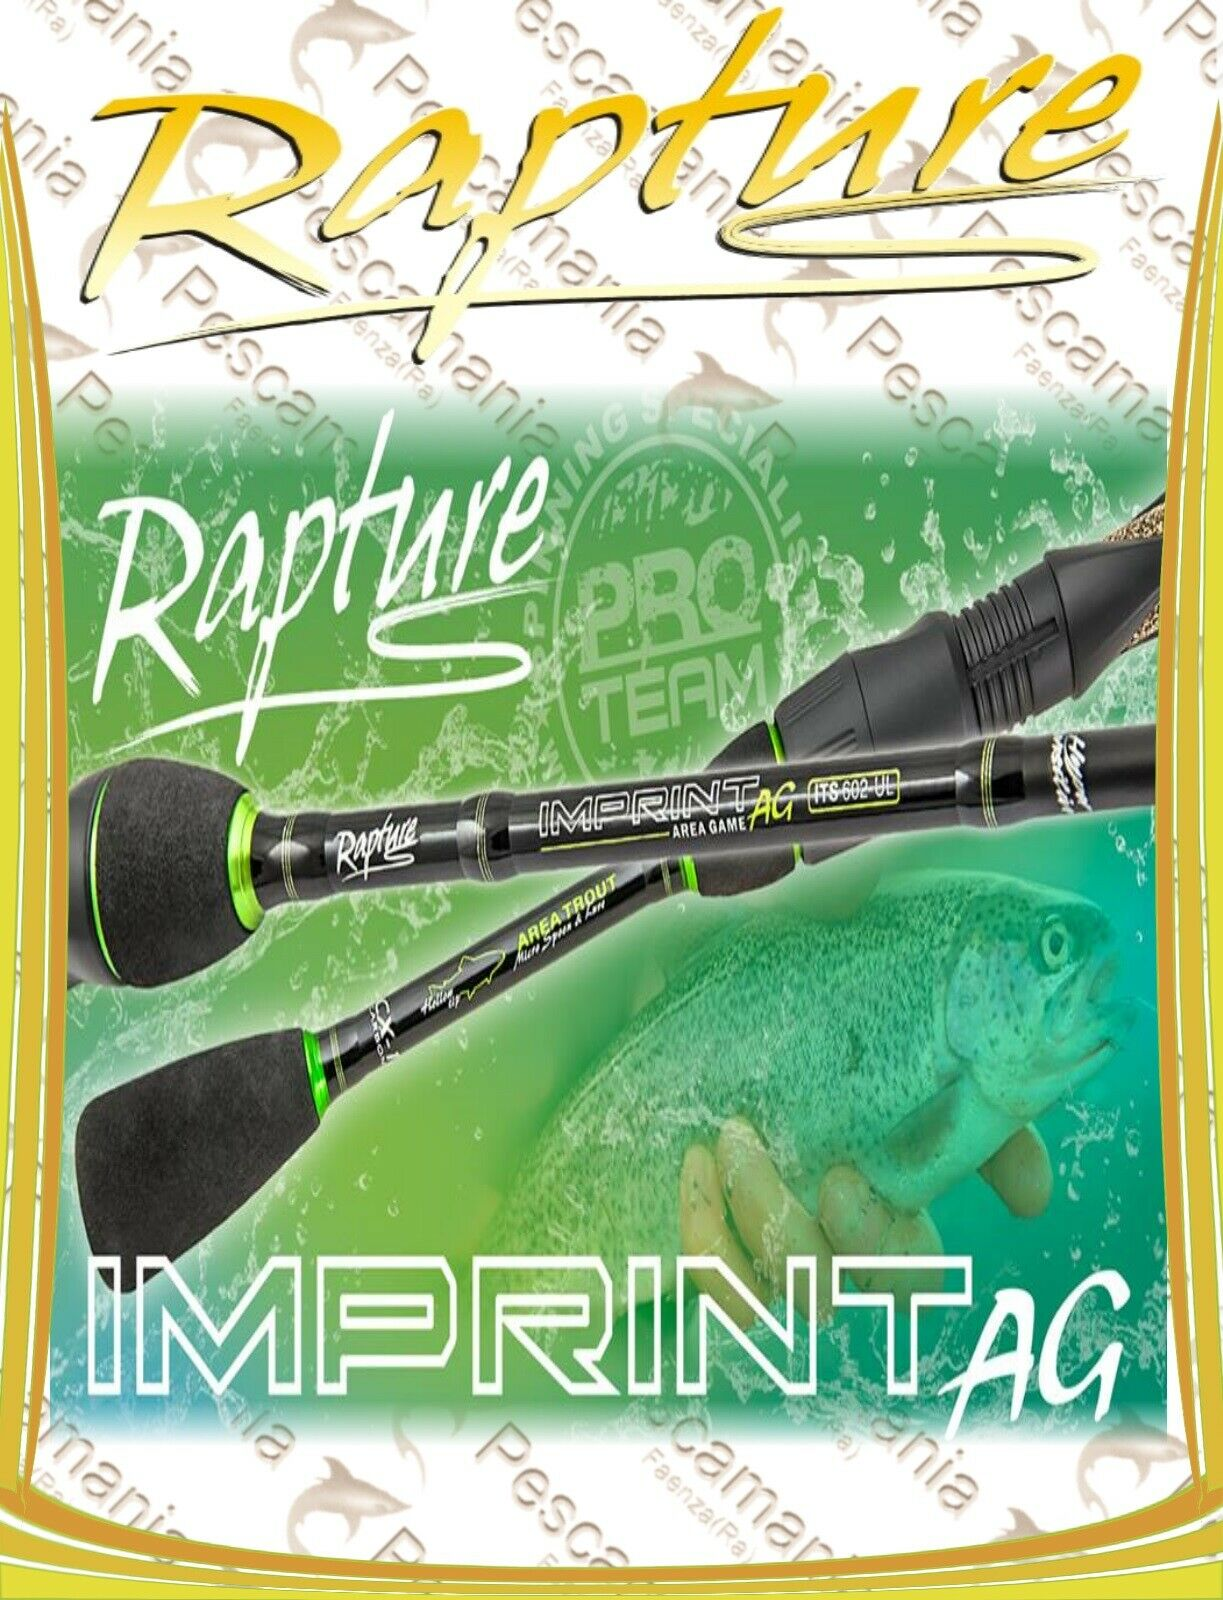 Canna spinning Rapture IMPRINT Area Game Licht spinning Area Speciaal forel trota